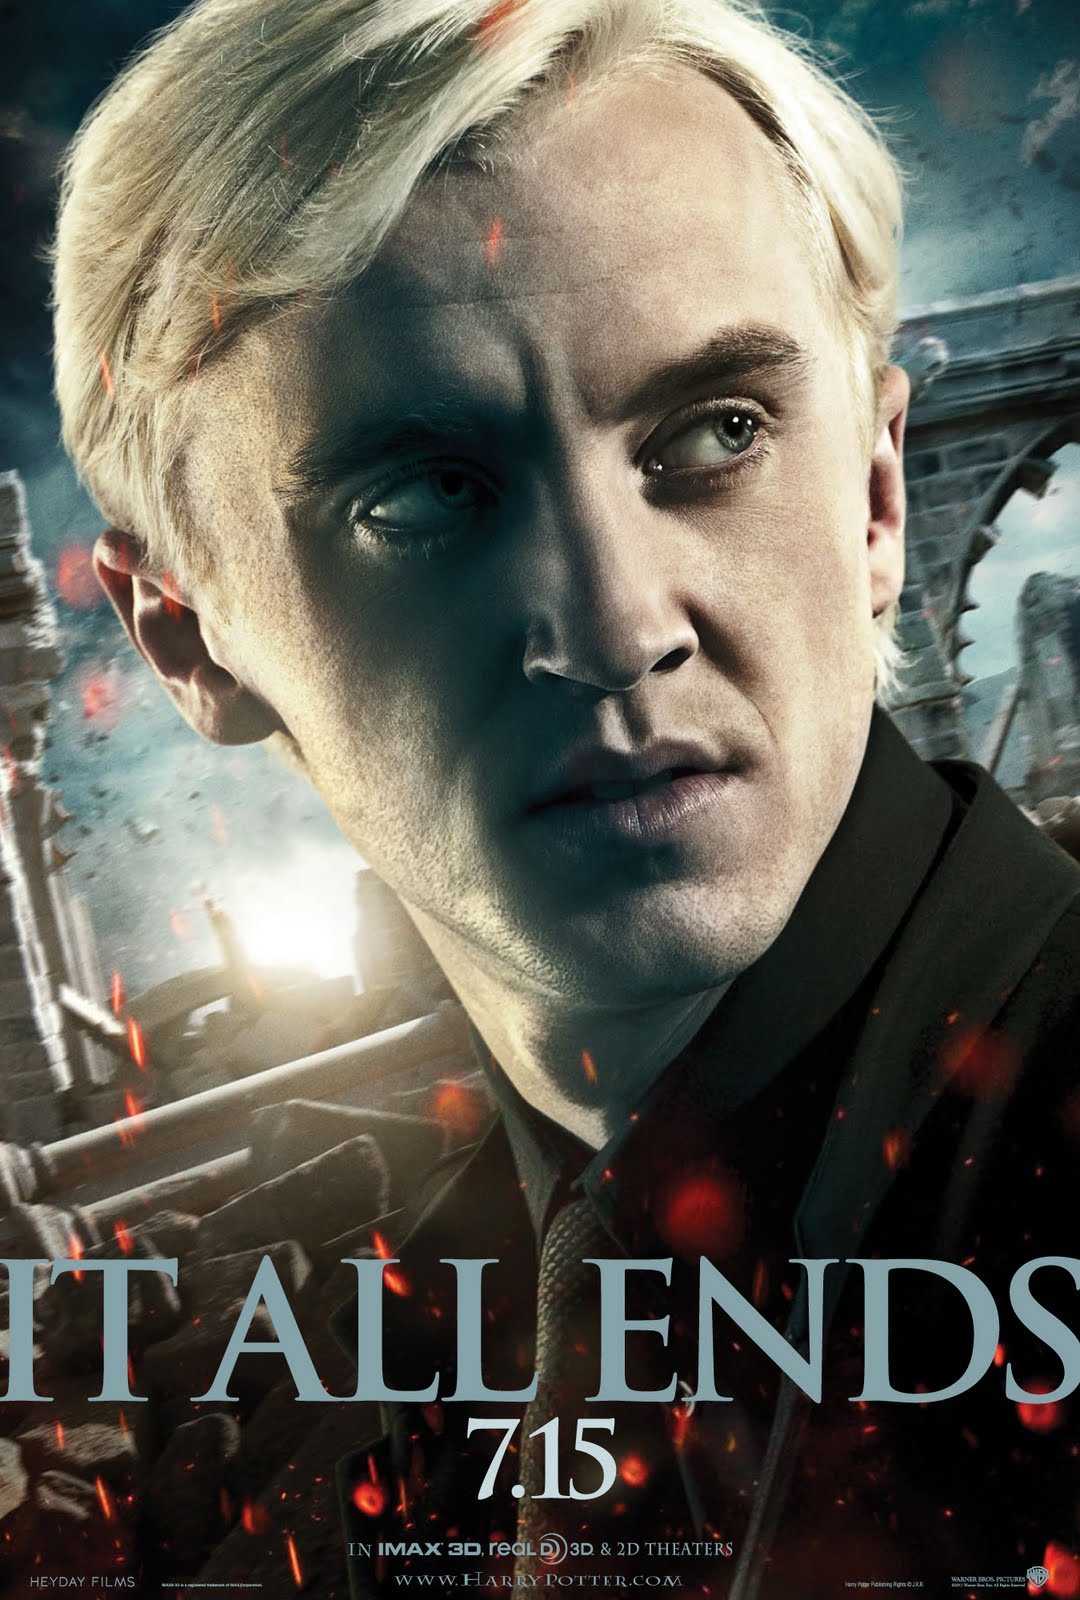 This New Poster Of Harry Potter And The Deathly Hallows Part 2 Features Draco Malfoy